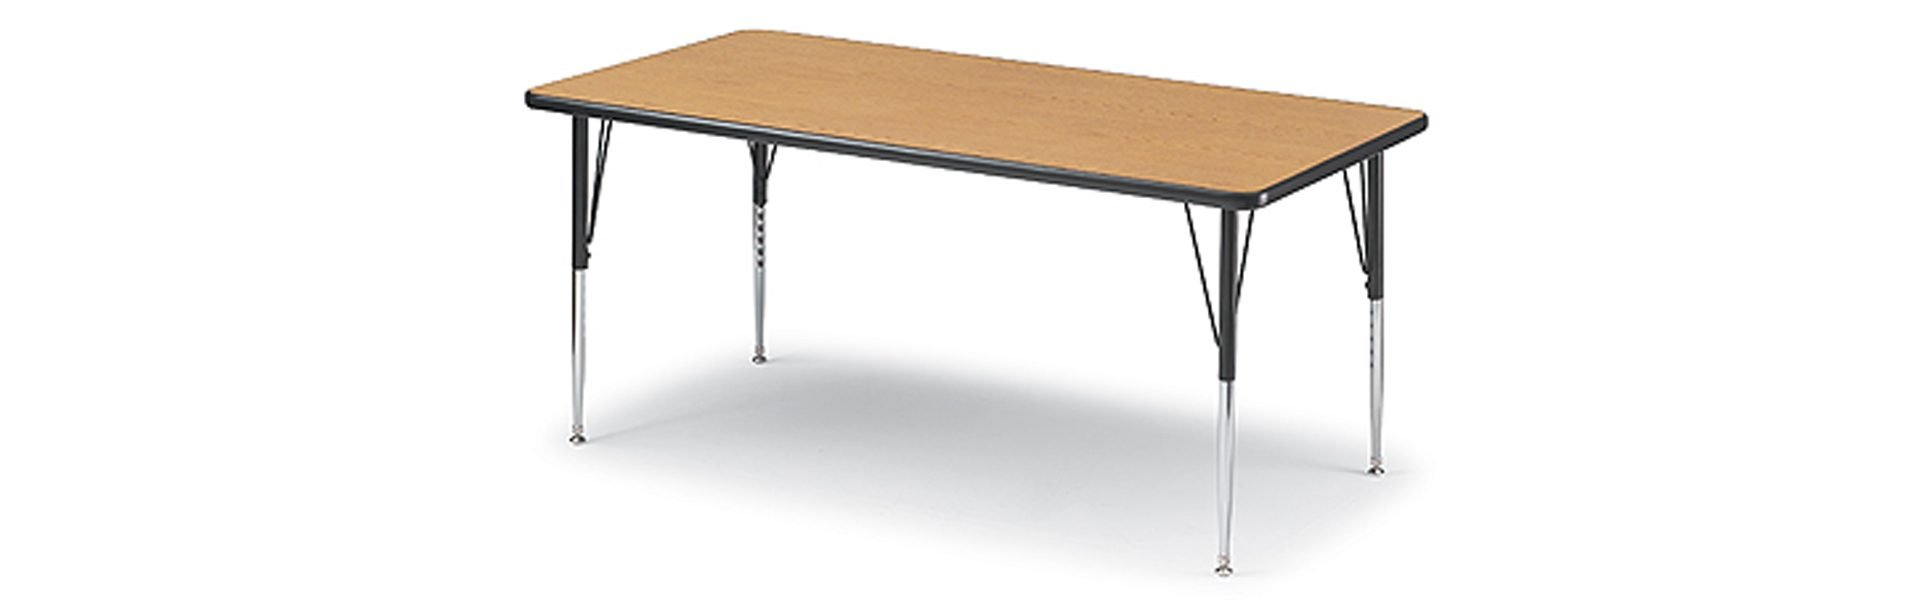 Corilam Activity Table